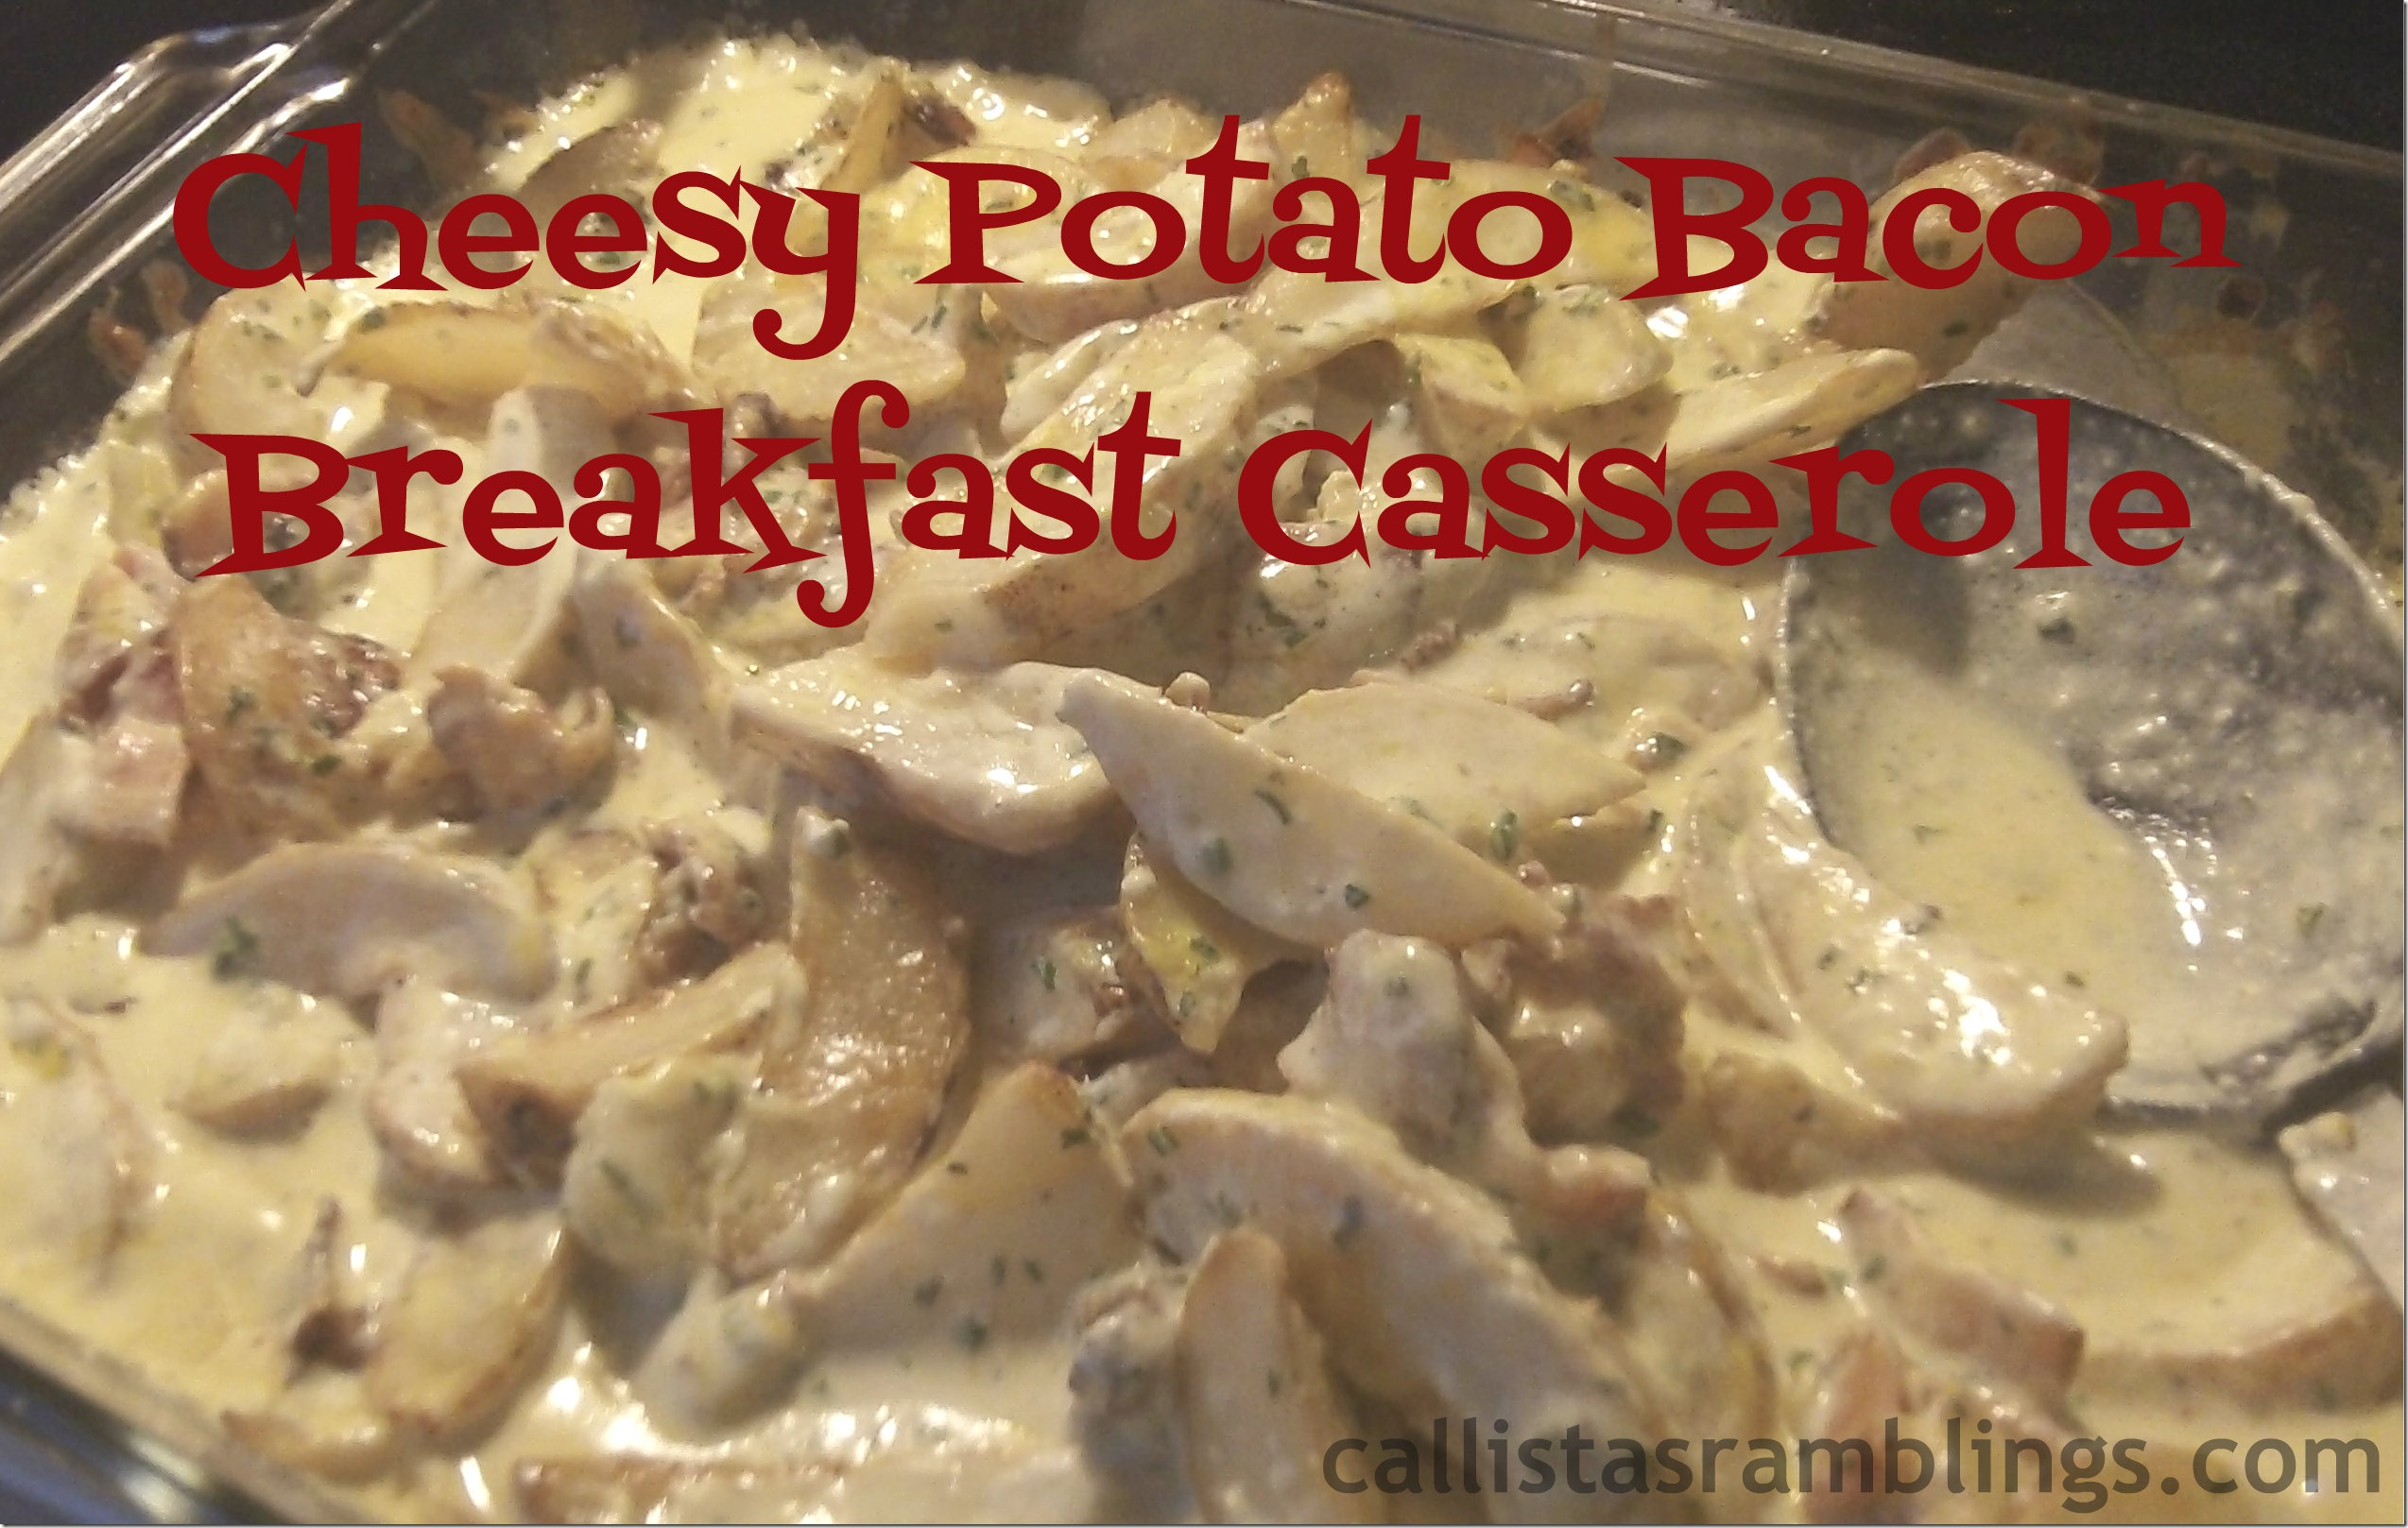 cheesy-potato-bacon-breakfast-casserole-recipe